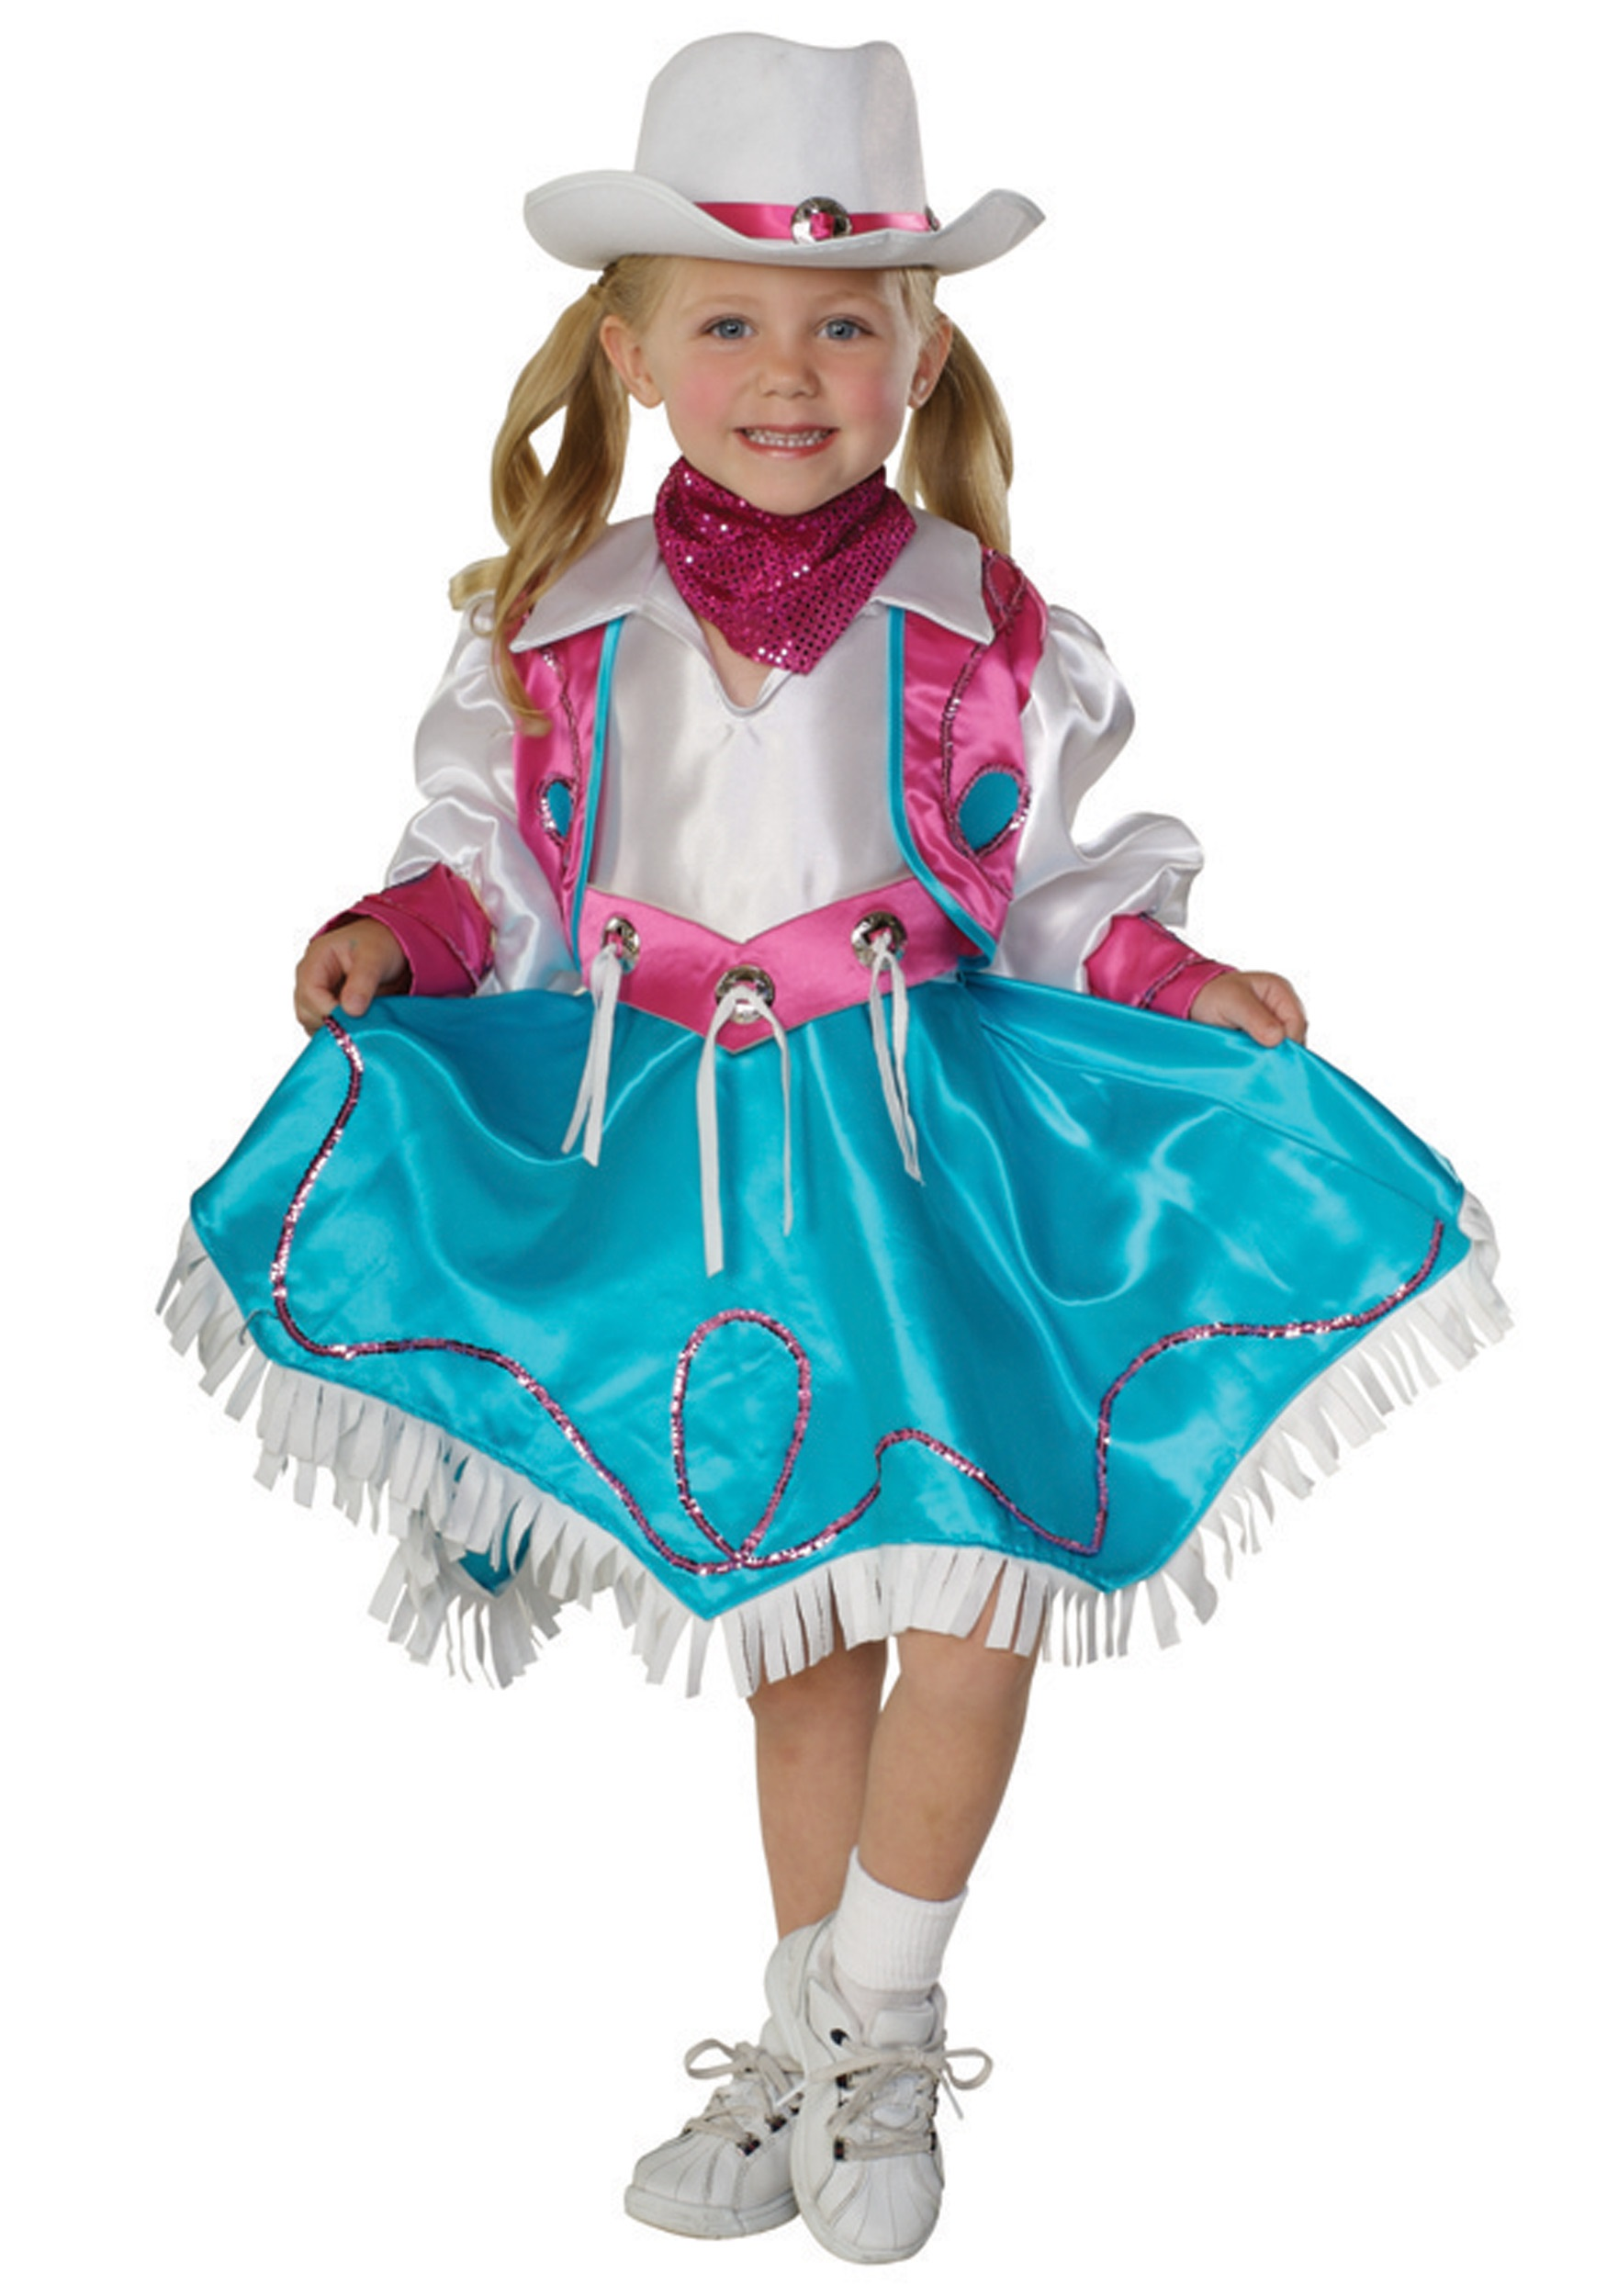 Child Rodeo Princess Costume  sc 1 st  Halloween Costumes & Child Rodeo Princess Costume - Halloween Costumes